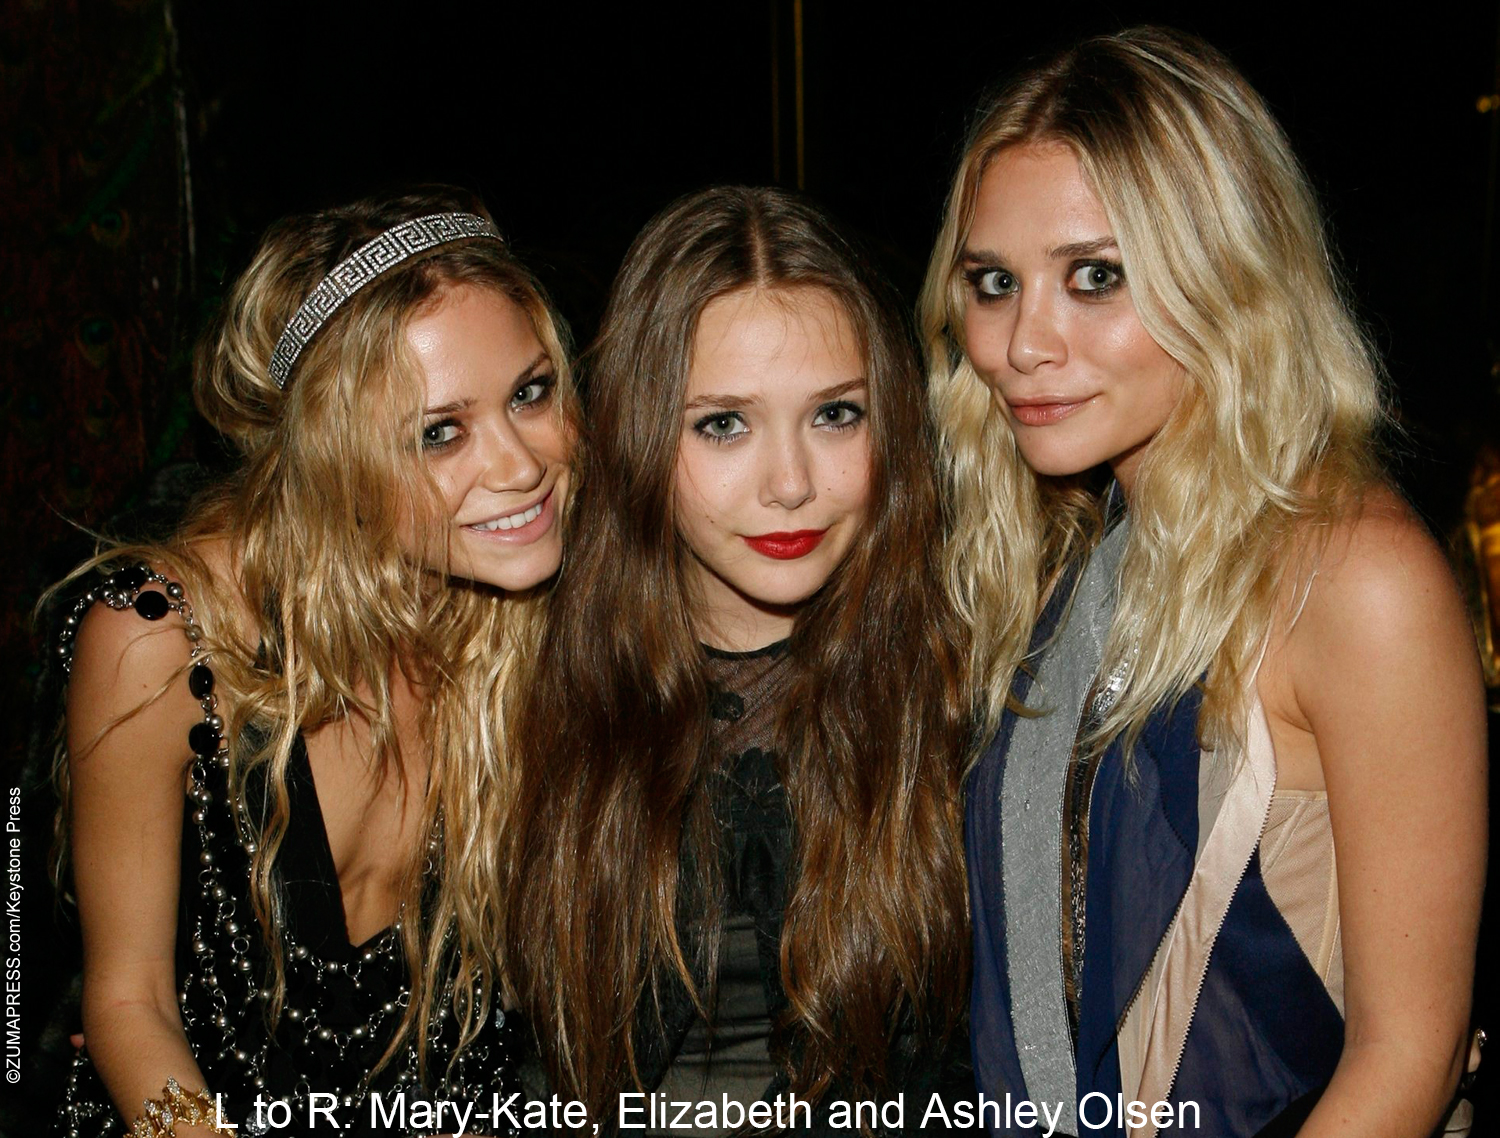 Mary Kate And Ashley Movies Celebrate The Olsen Twins: Mary-Kate, Ashley And Elizabeth Olsen